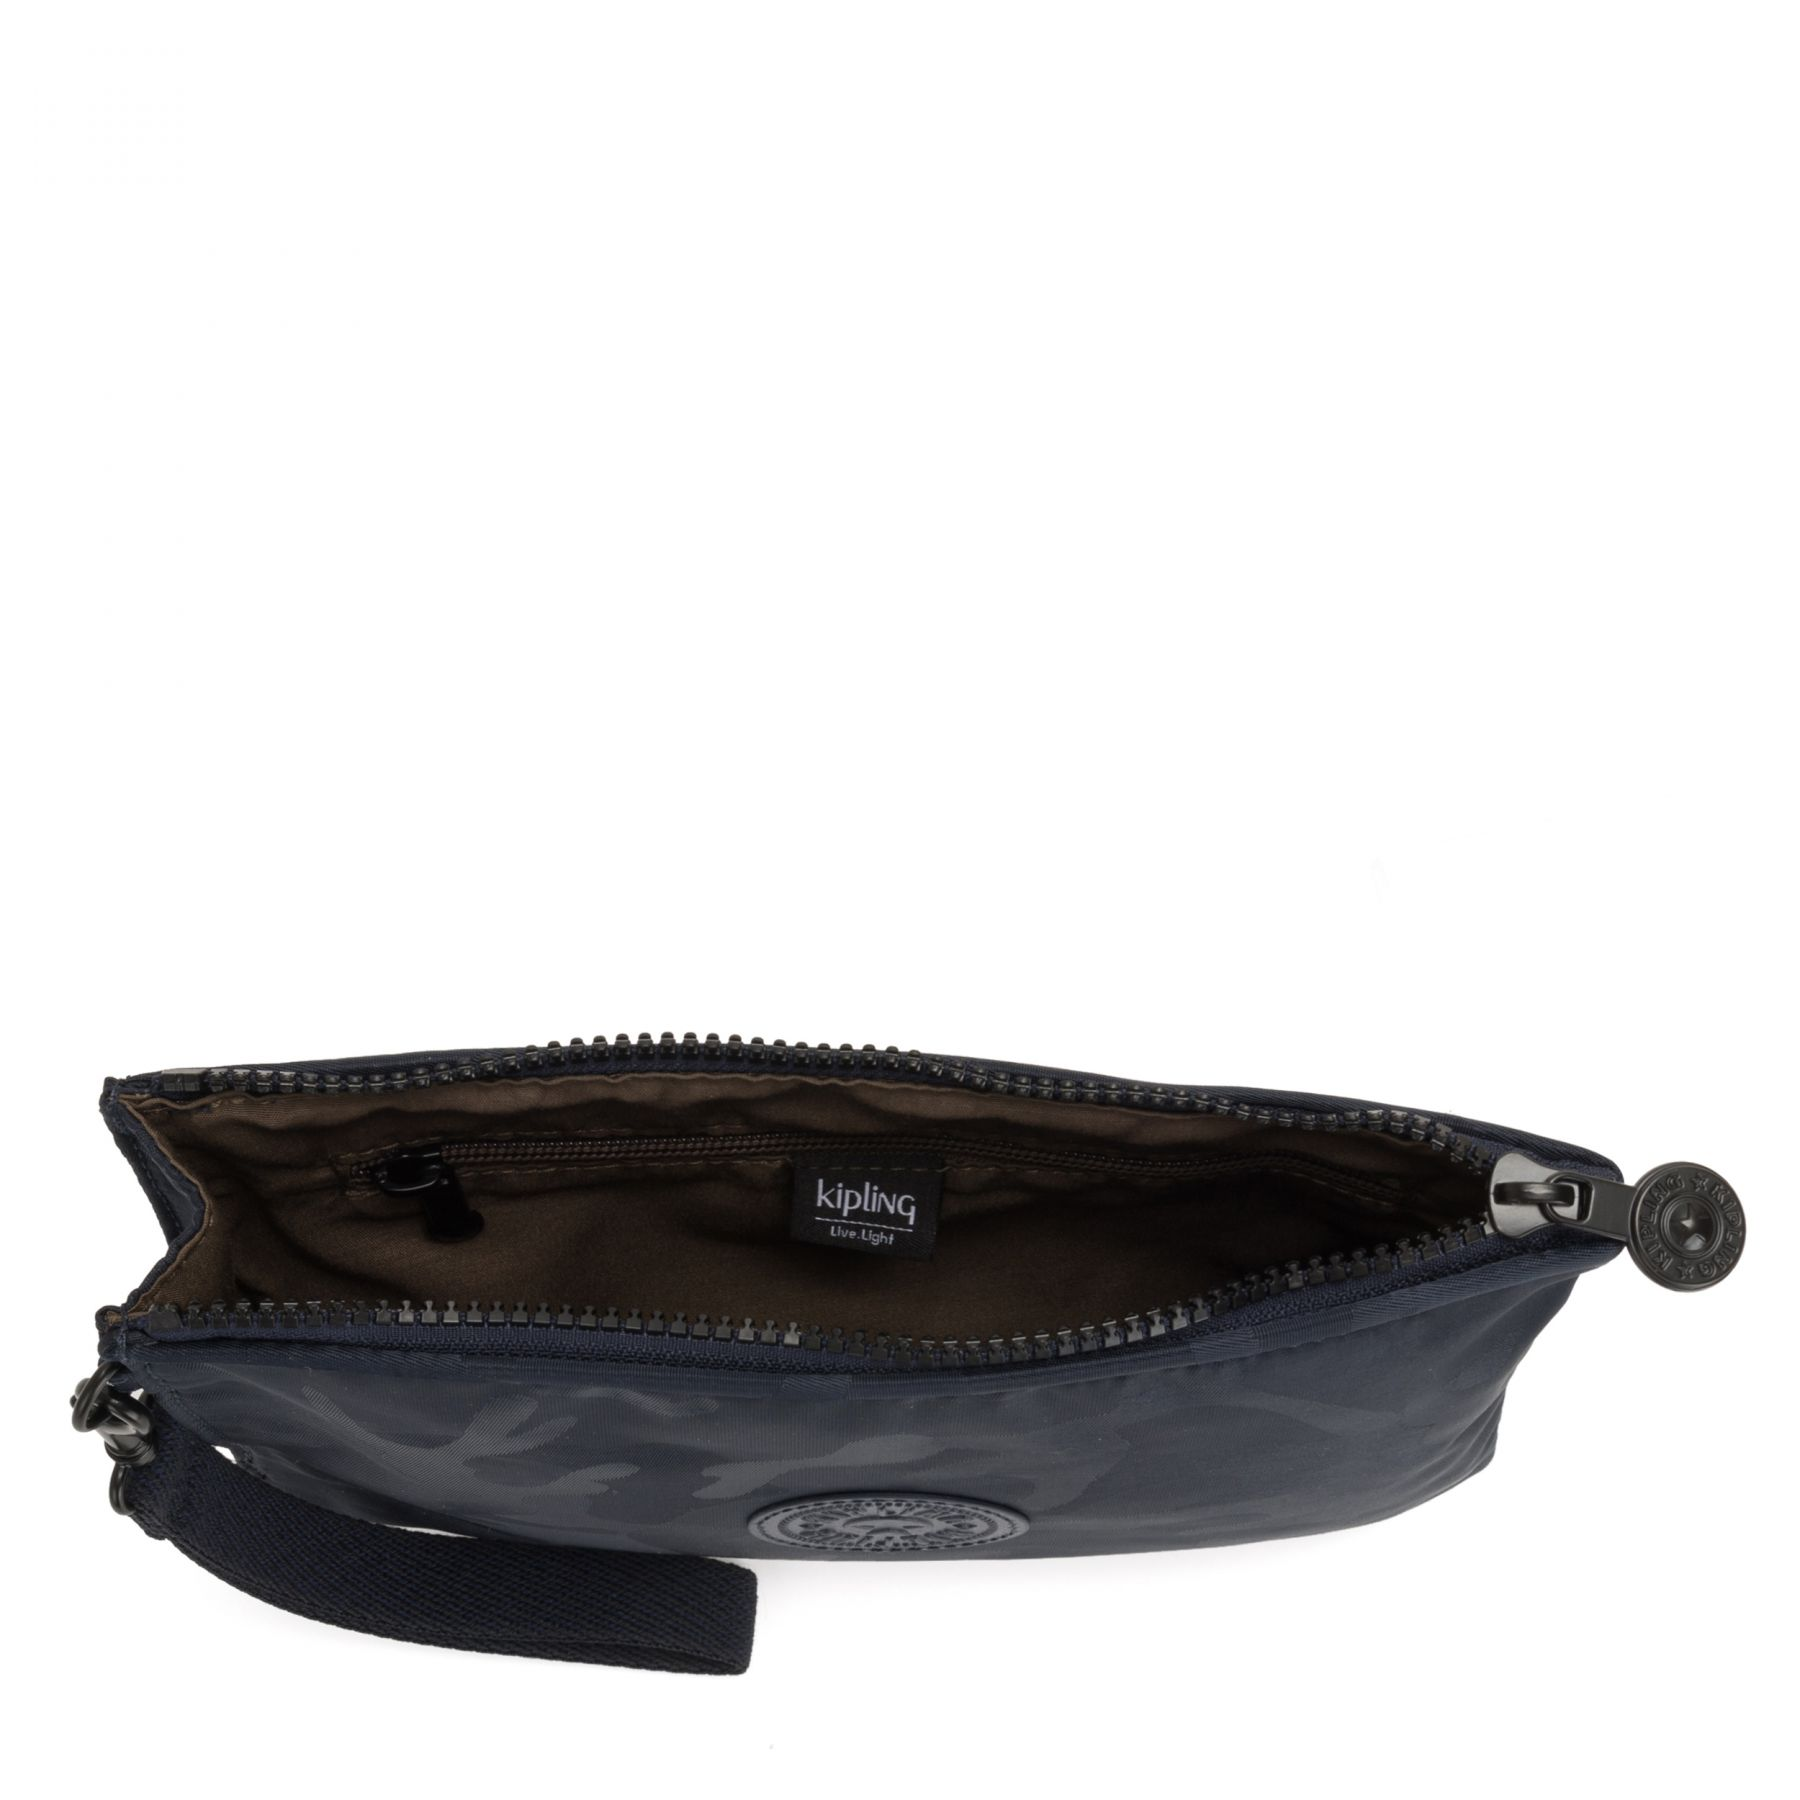 ELLETTRONICO Travel Accessories by Kipling - view 4